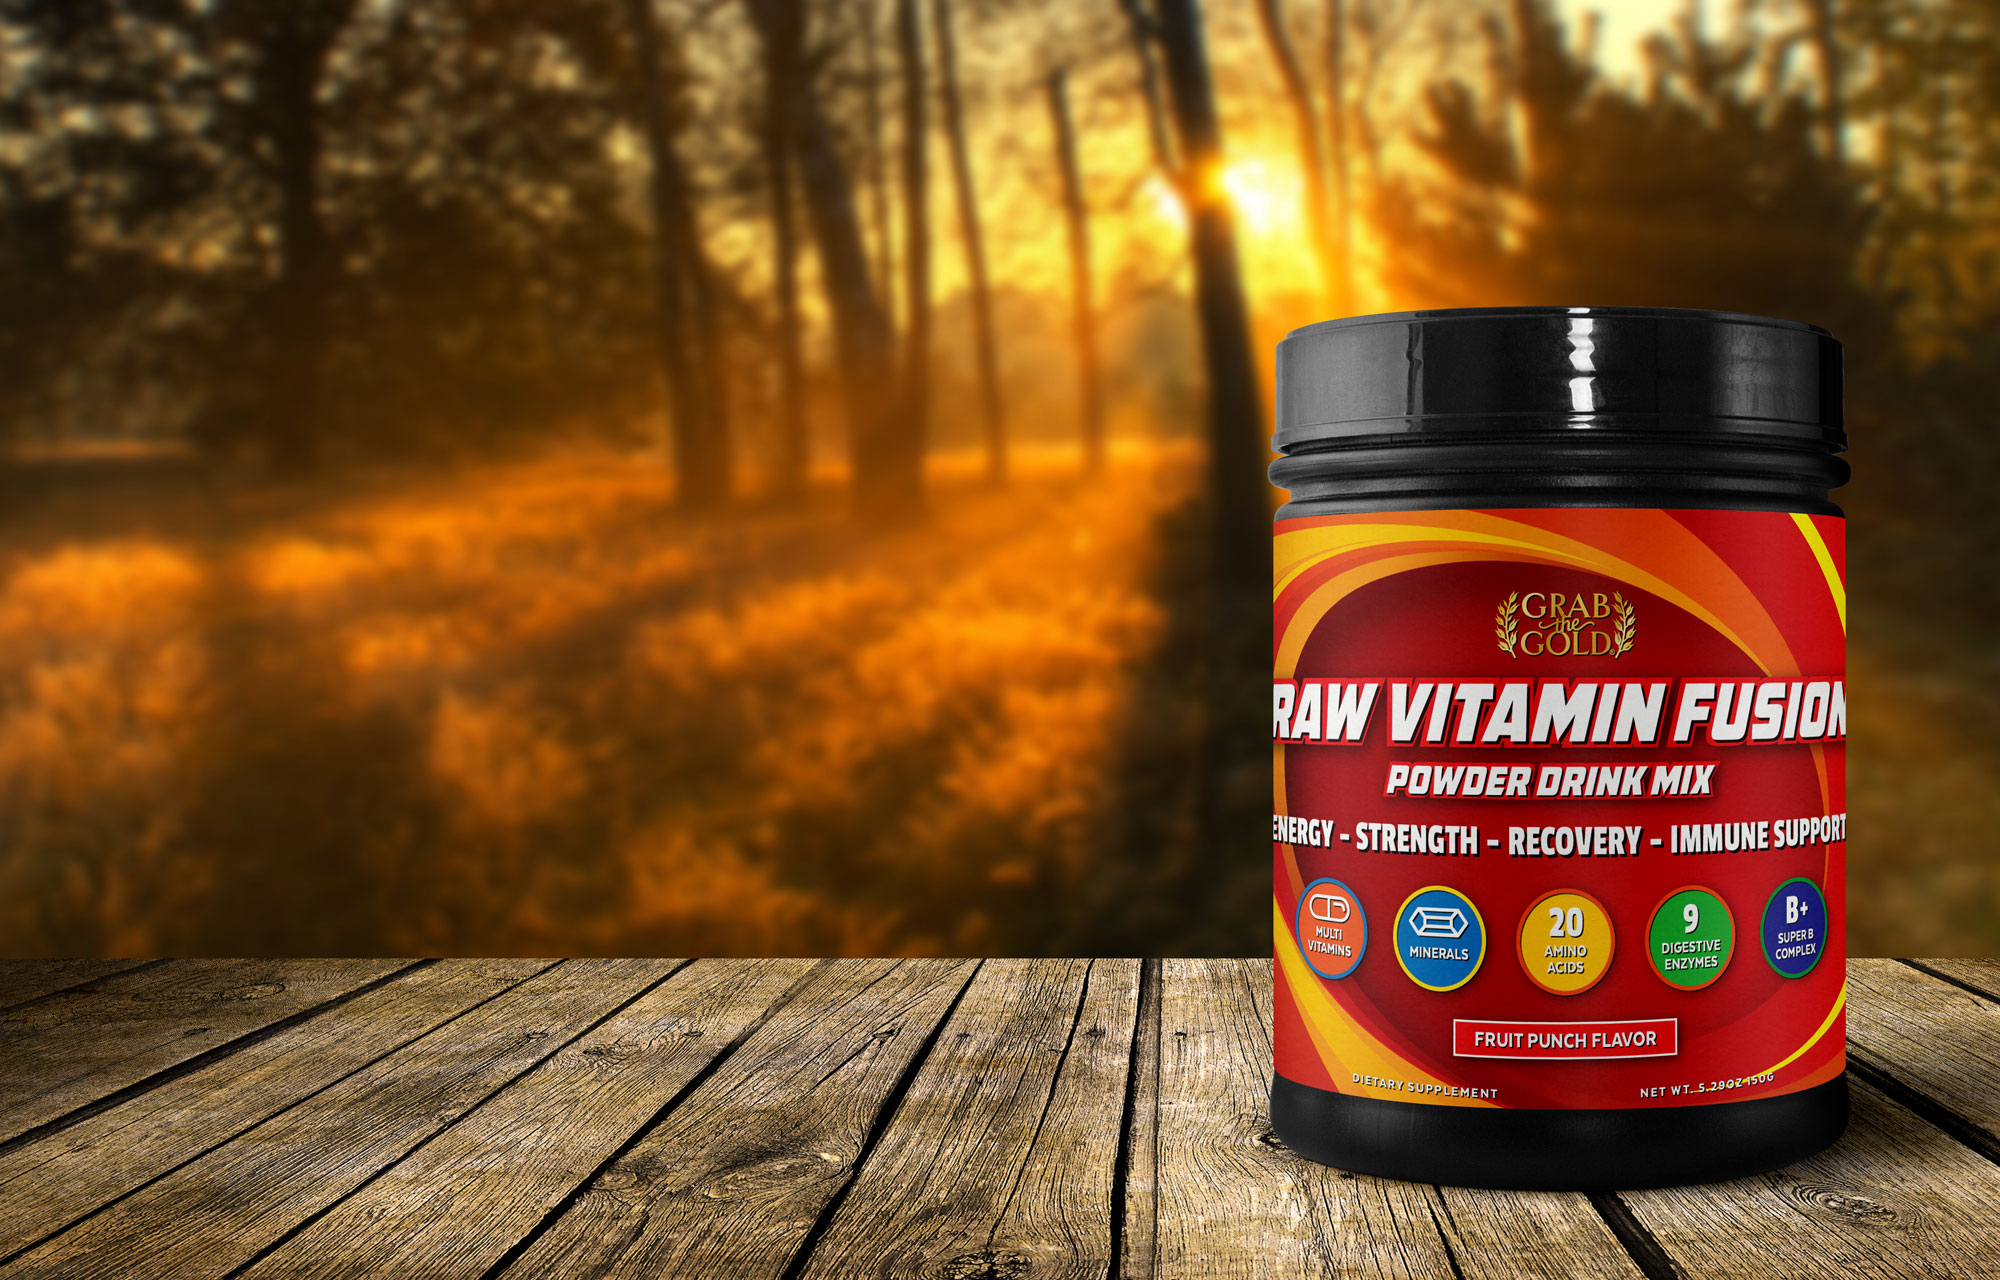 Grab The Gold Raw Vitamin Fusion Bottle Image 08.17 r1